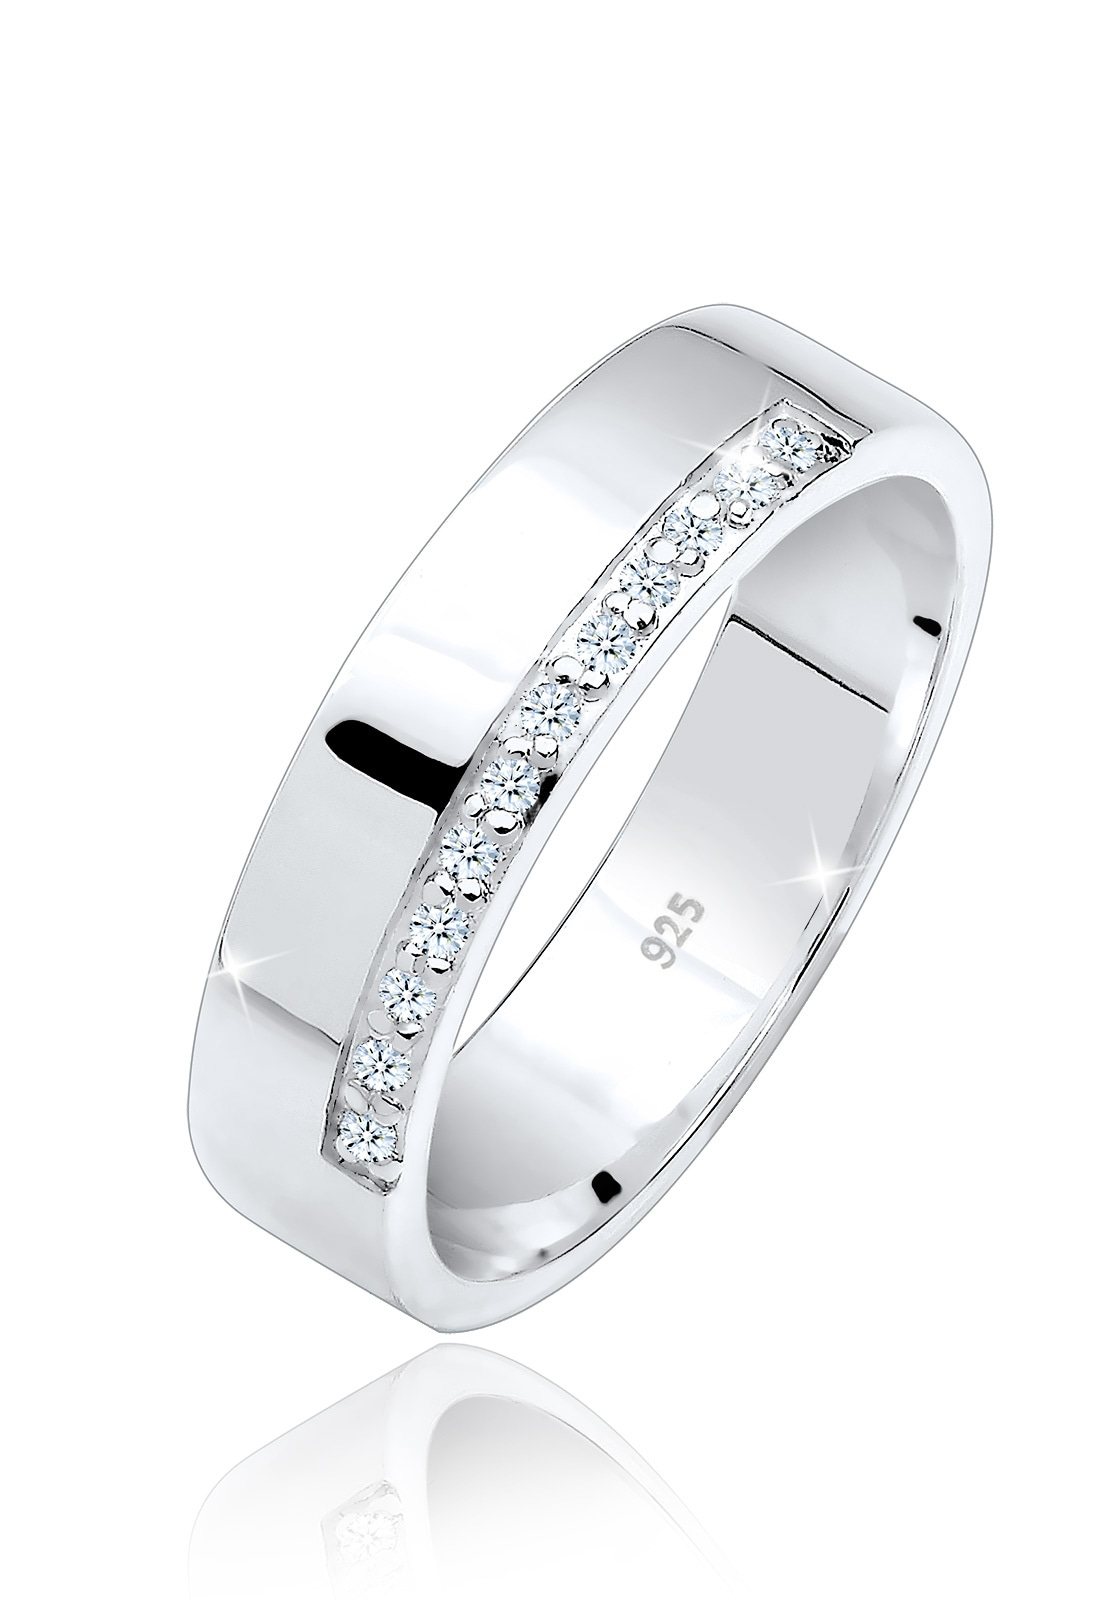 Elli Diamantring Bandring Basic Diamanten 012 ct 925 Silber | Schmuck > Ringe > Diamantringe | Elli